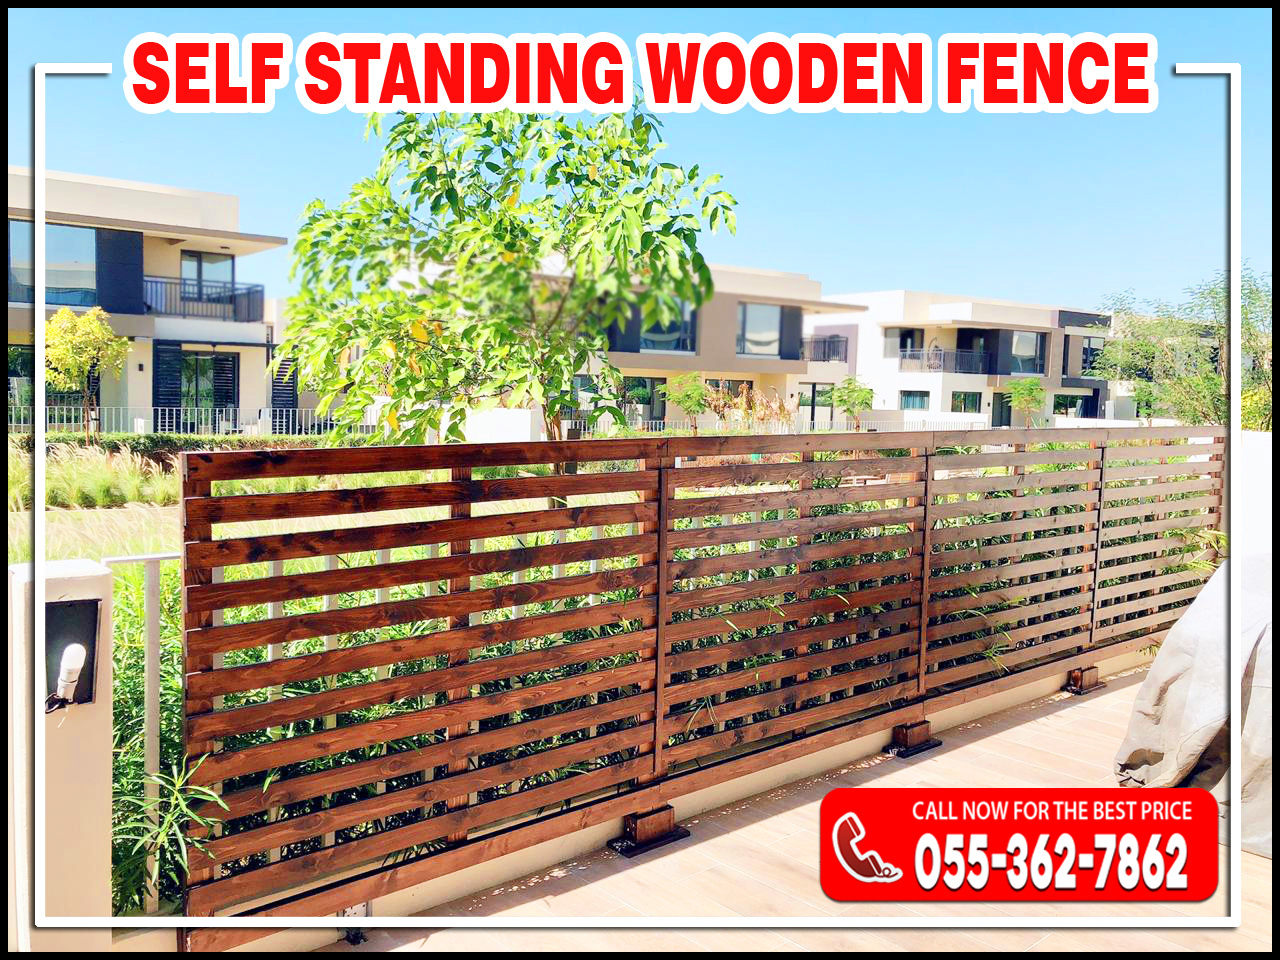 Self Standing Wooden Fences in UAE.jpg